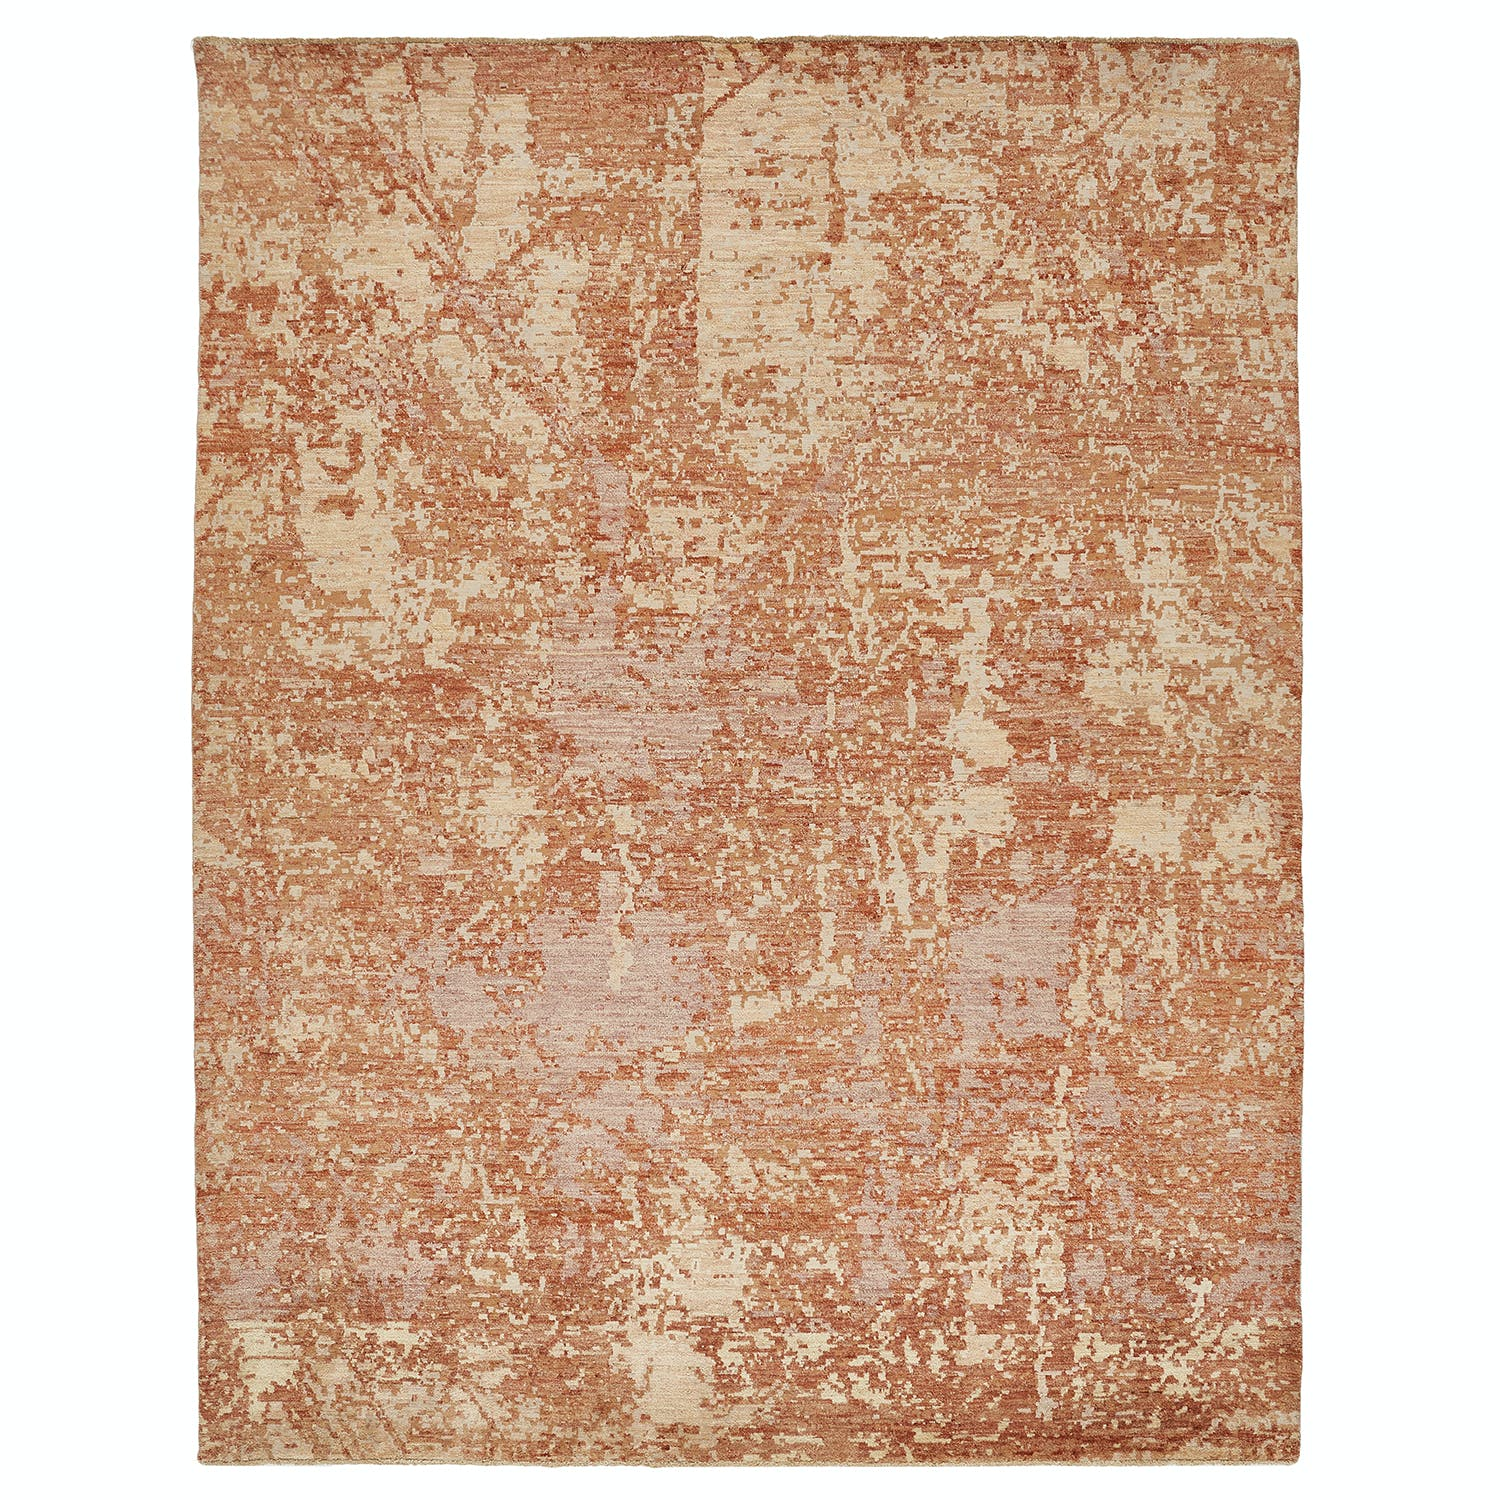 Contemporary Abstract Wool Rug - 8' x 10'2""